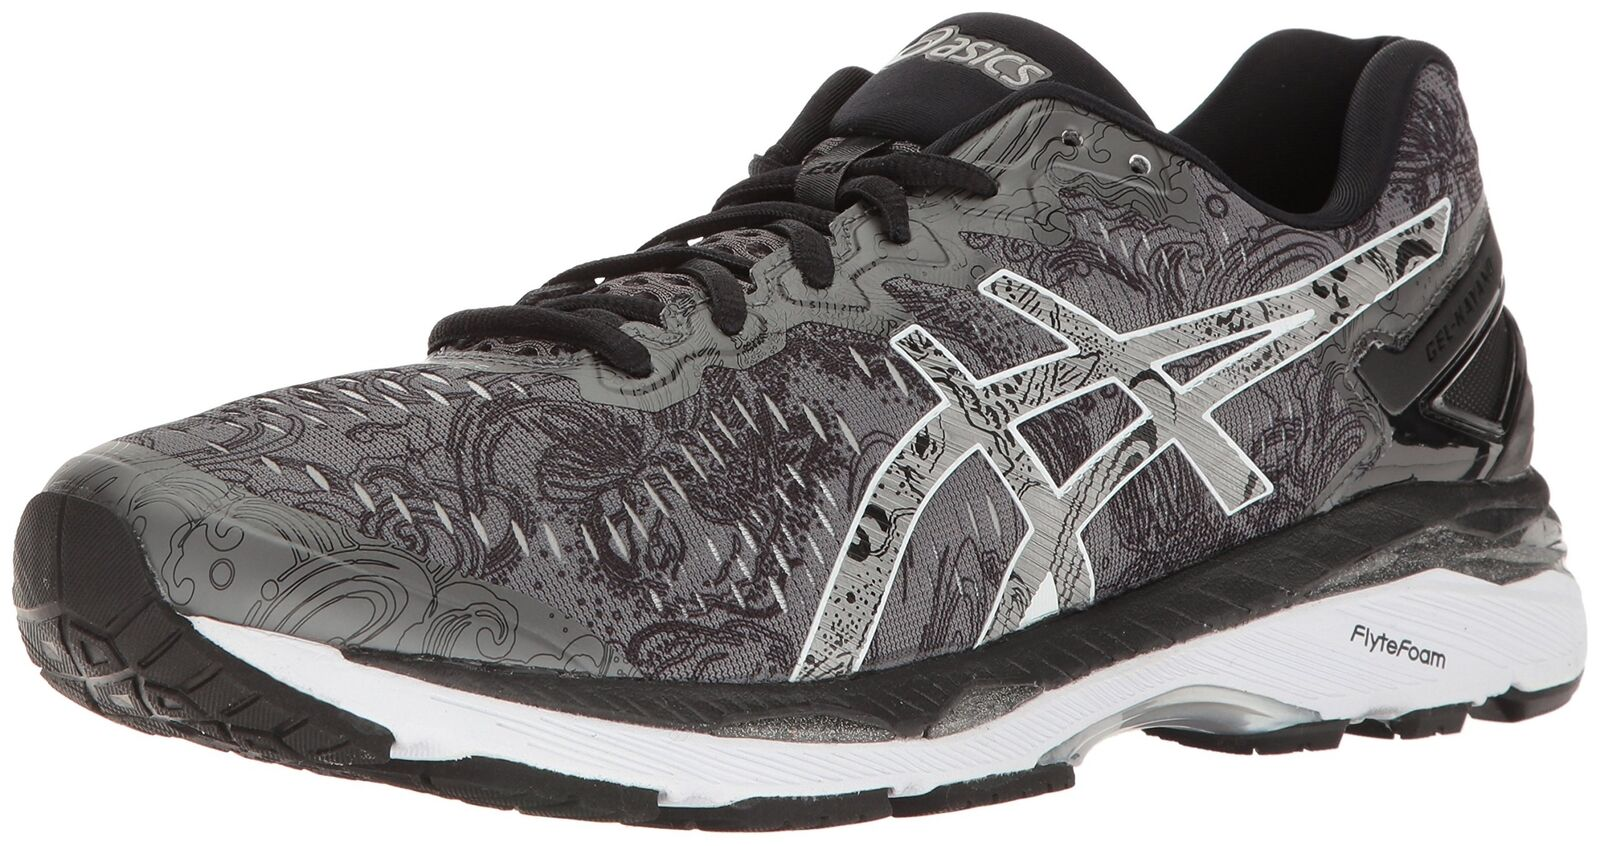 ASICS Men's Gel-Kayano 23 Lite-Show Running shoes, Carbon Silver Reflective, 6...